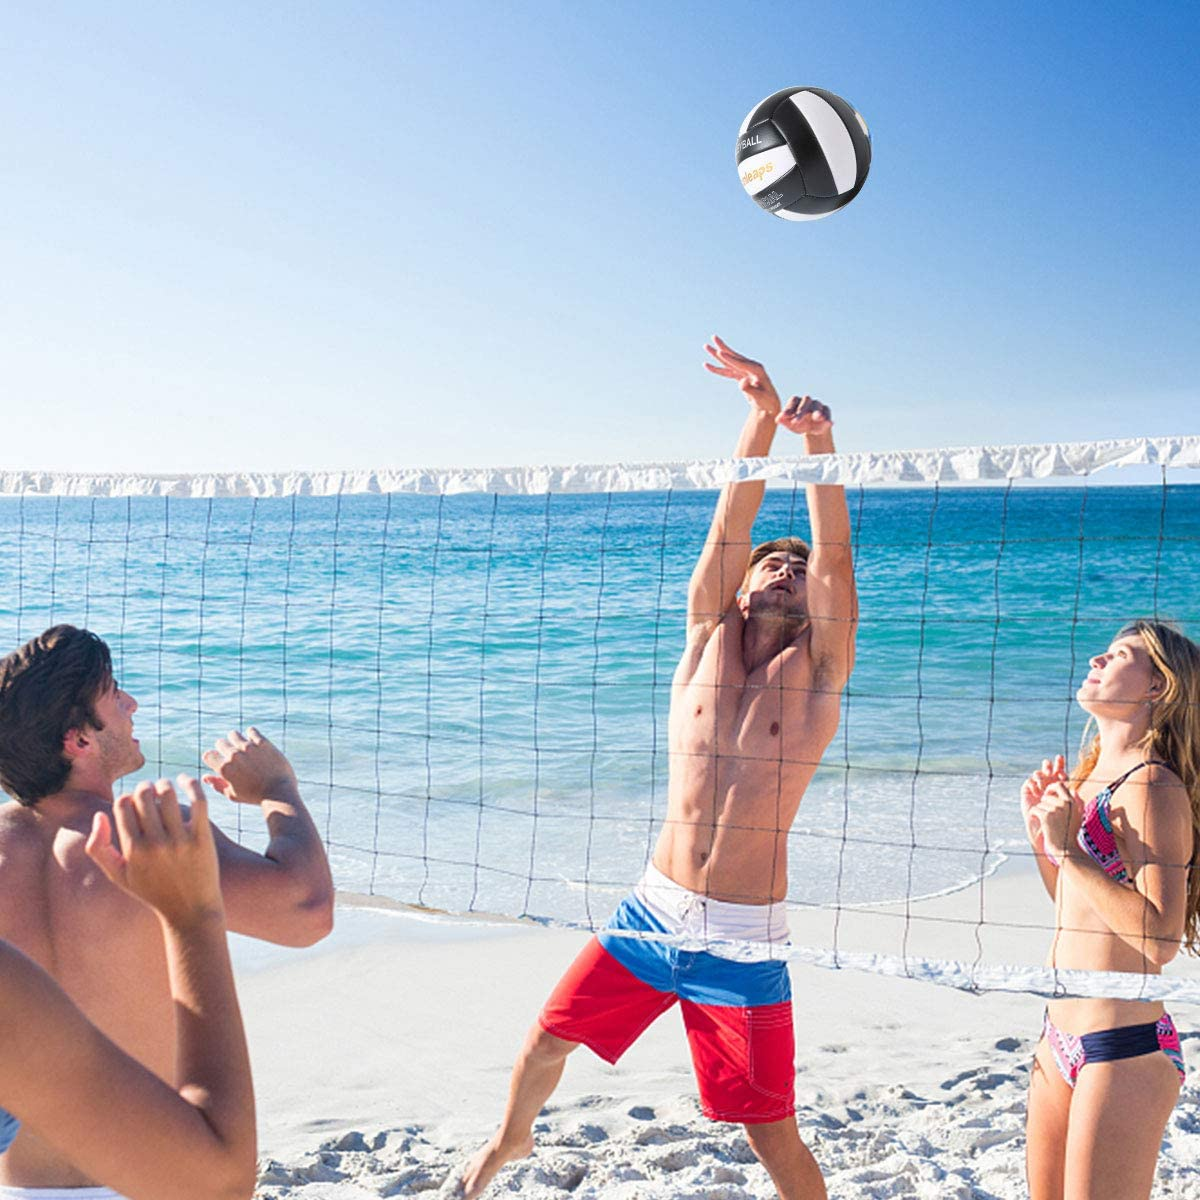 Runleaps Volleyball, Waterproof Indoor Outdoor Volleyball for Beach Game Gym Training